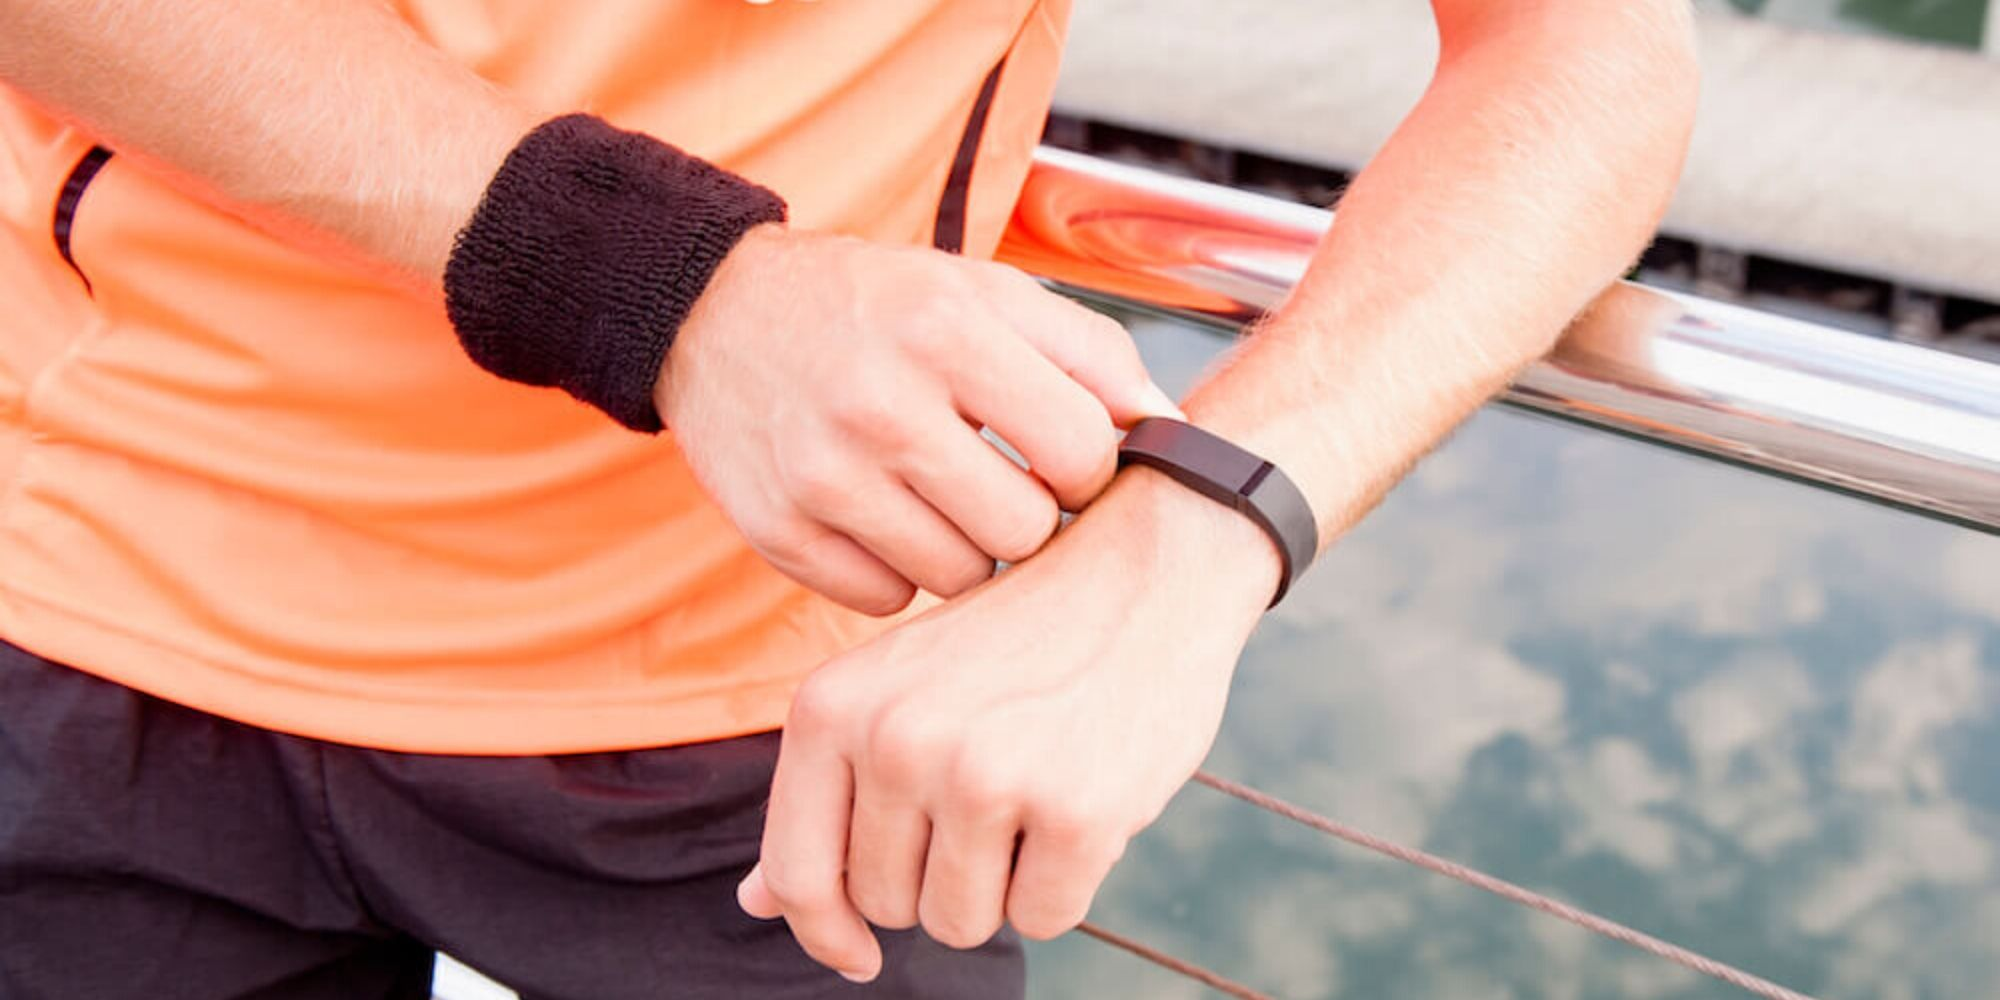 man in an orange shirt checking a fitness watch